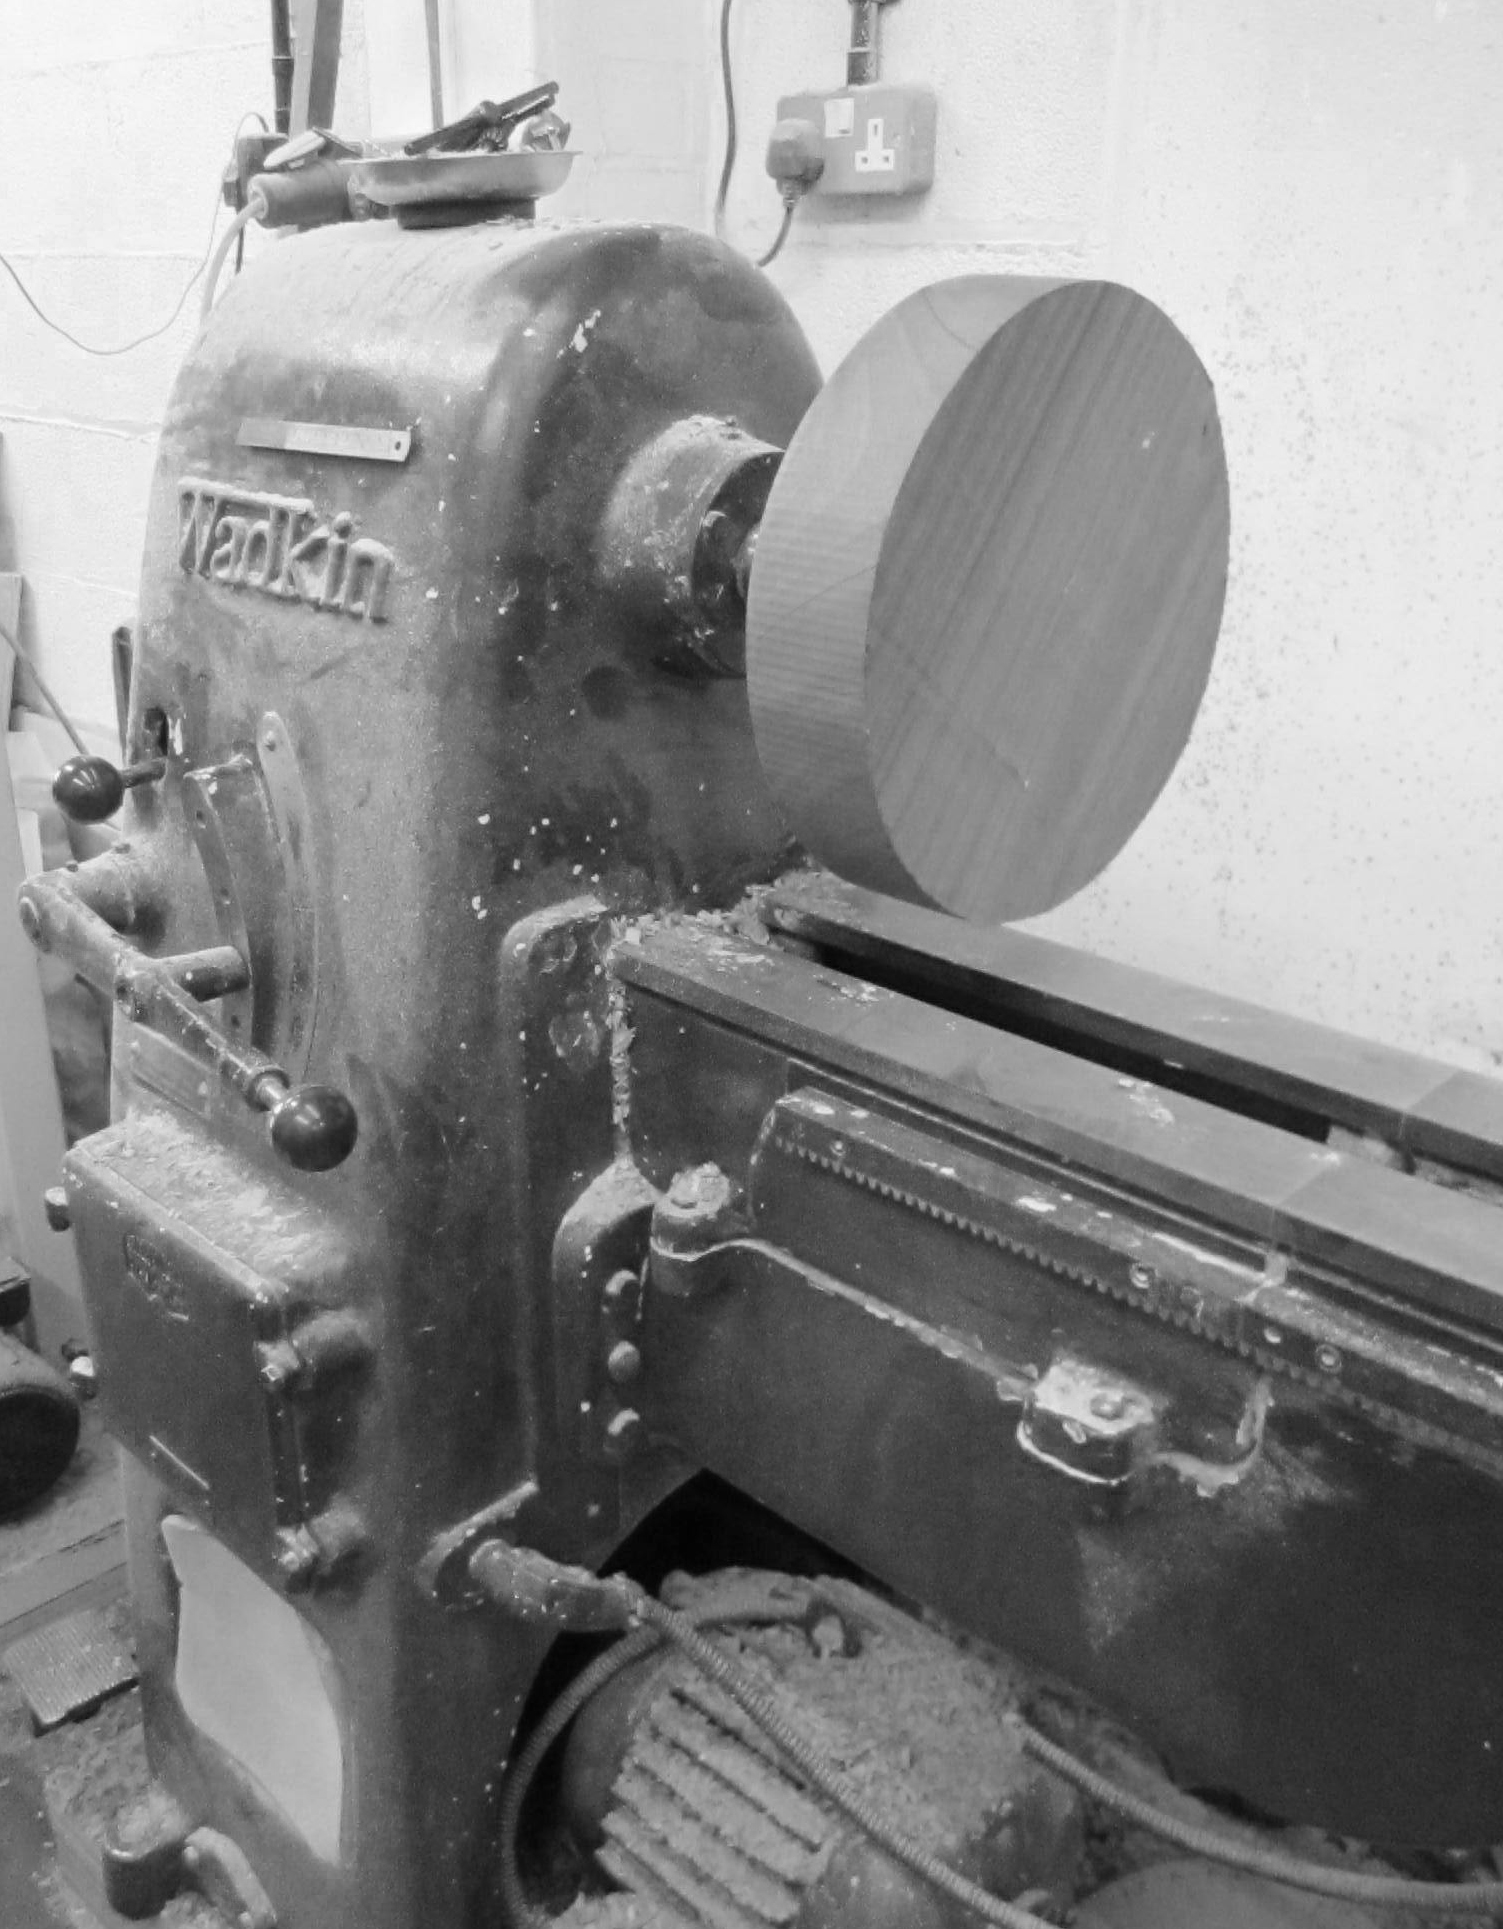 round block on the lathe ready to turn into shape